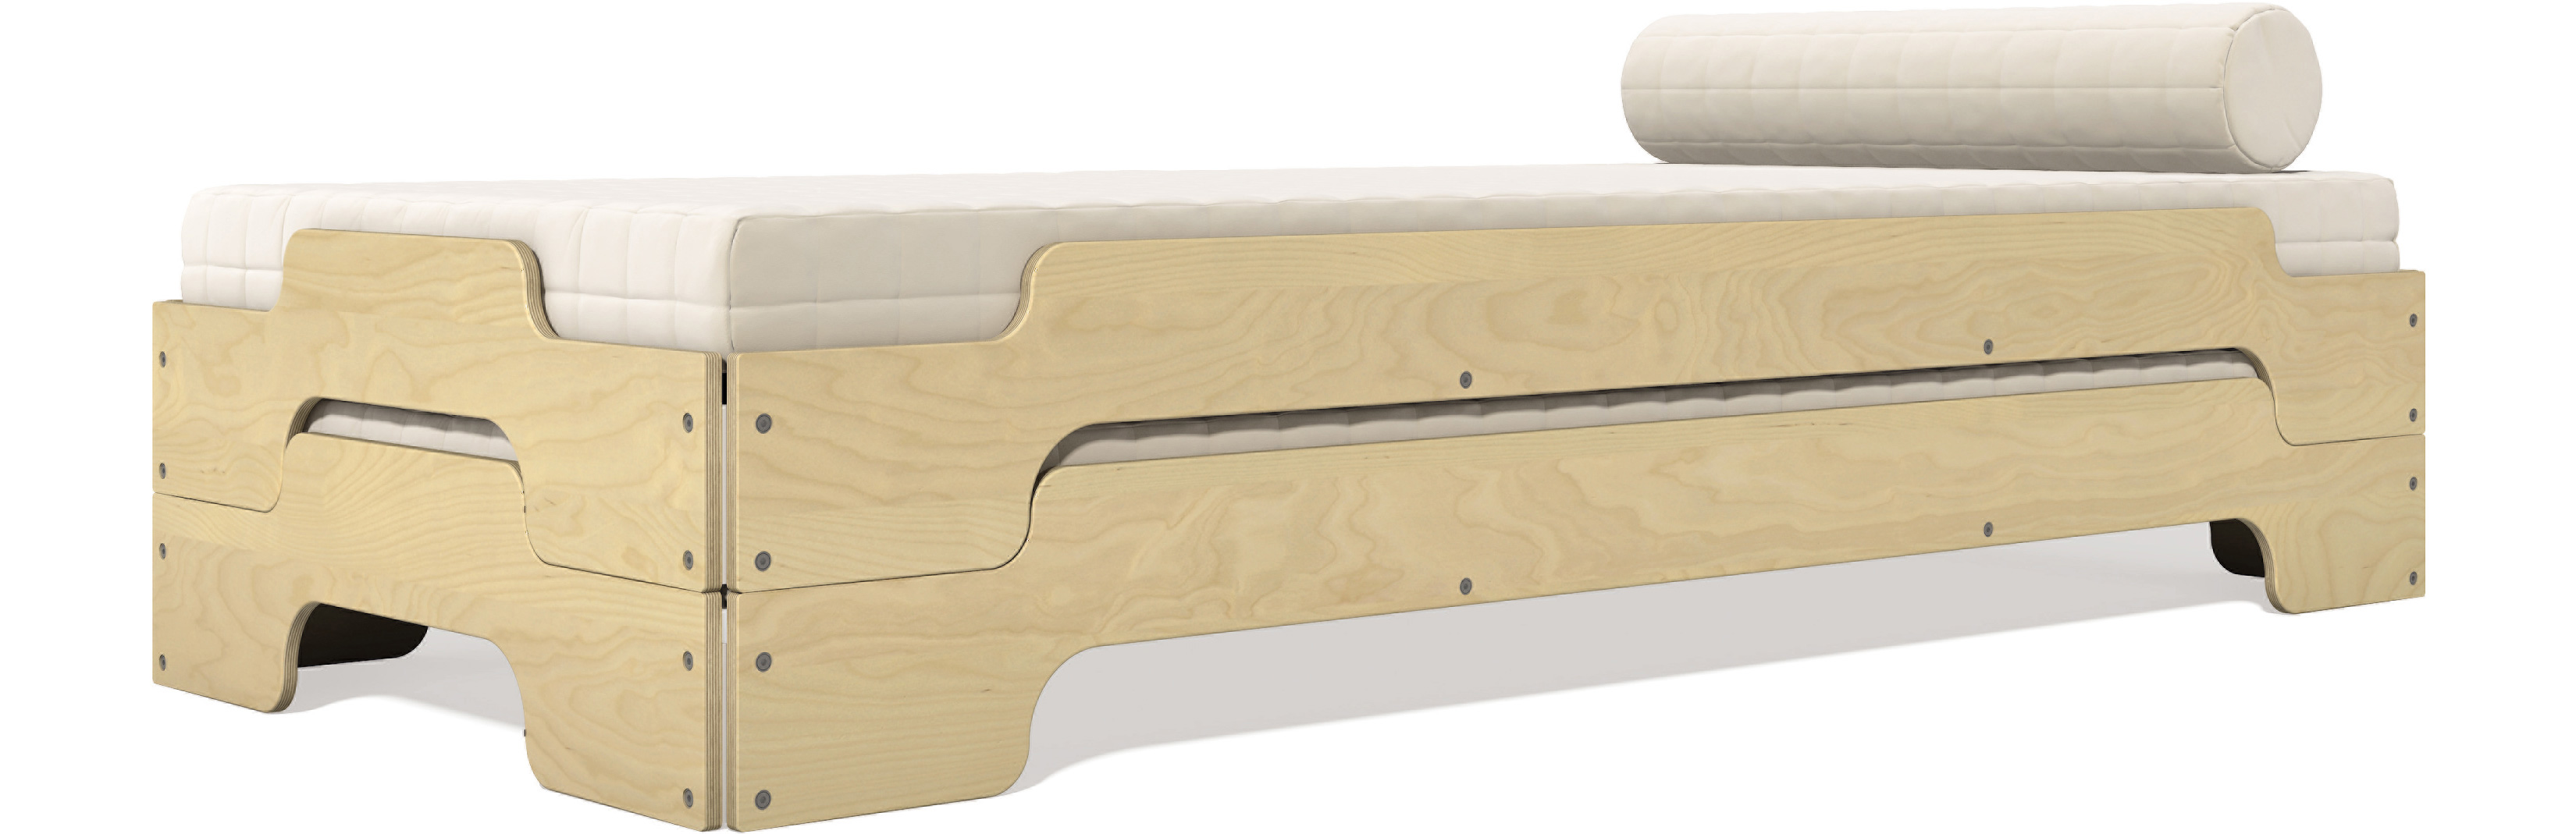 Rolf Heide Stapelliege Stacking Bed Classic Birch